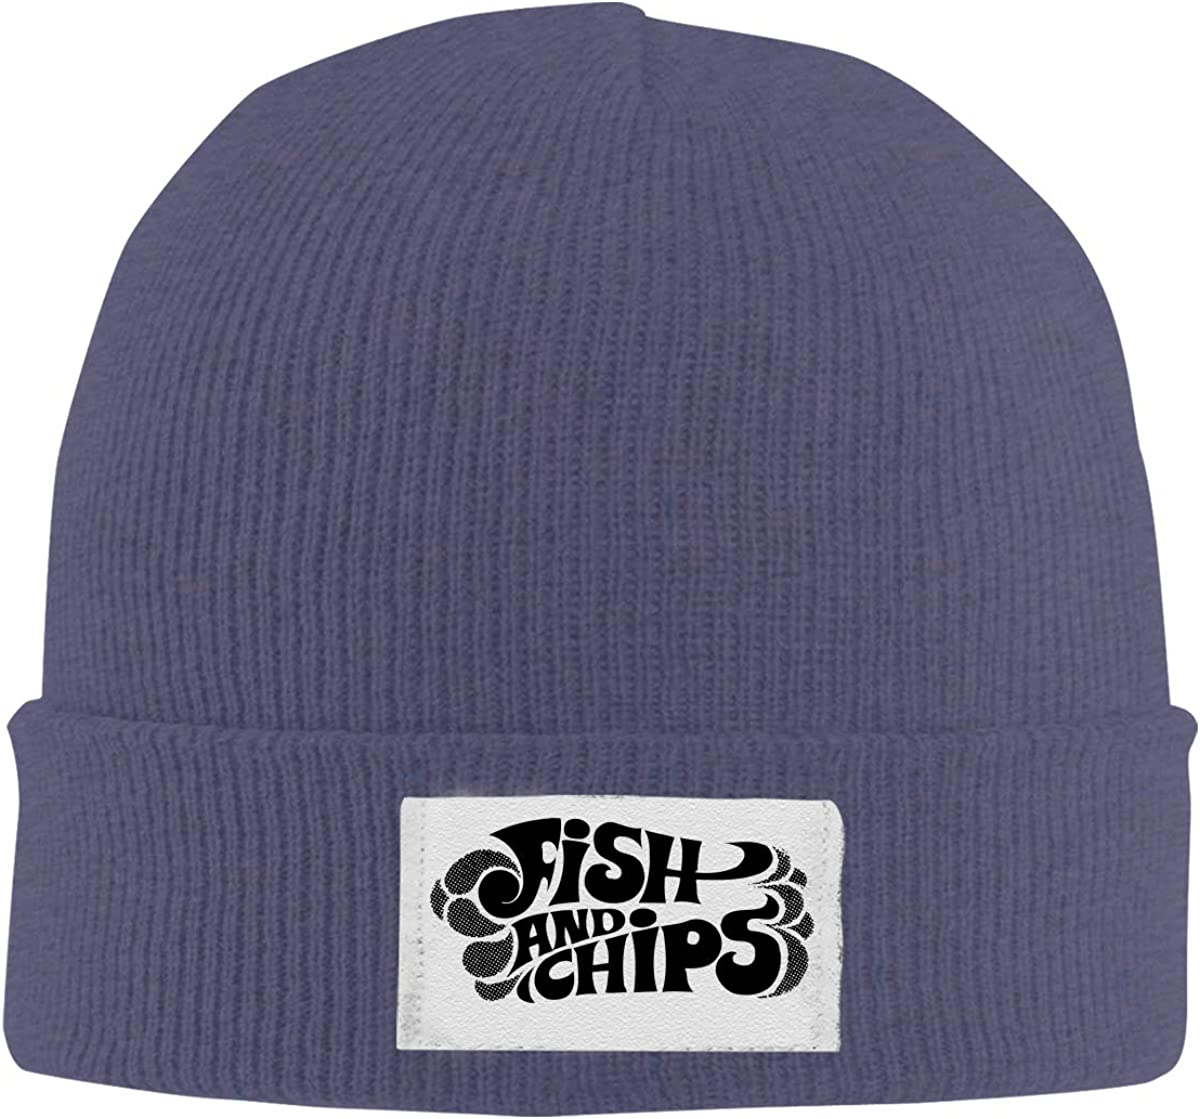 Paller Fish and Chip Knitted Hat Winter Outdoor Hat Warm Beanie Caps for Men Women